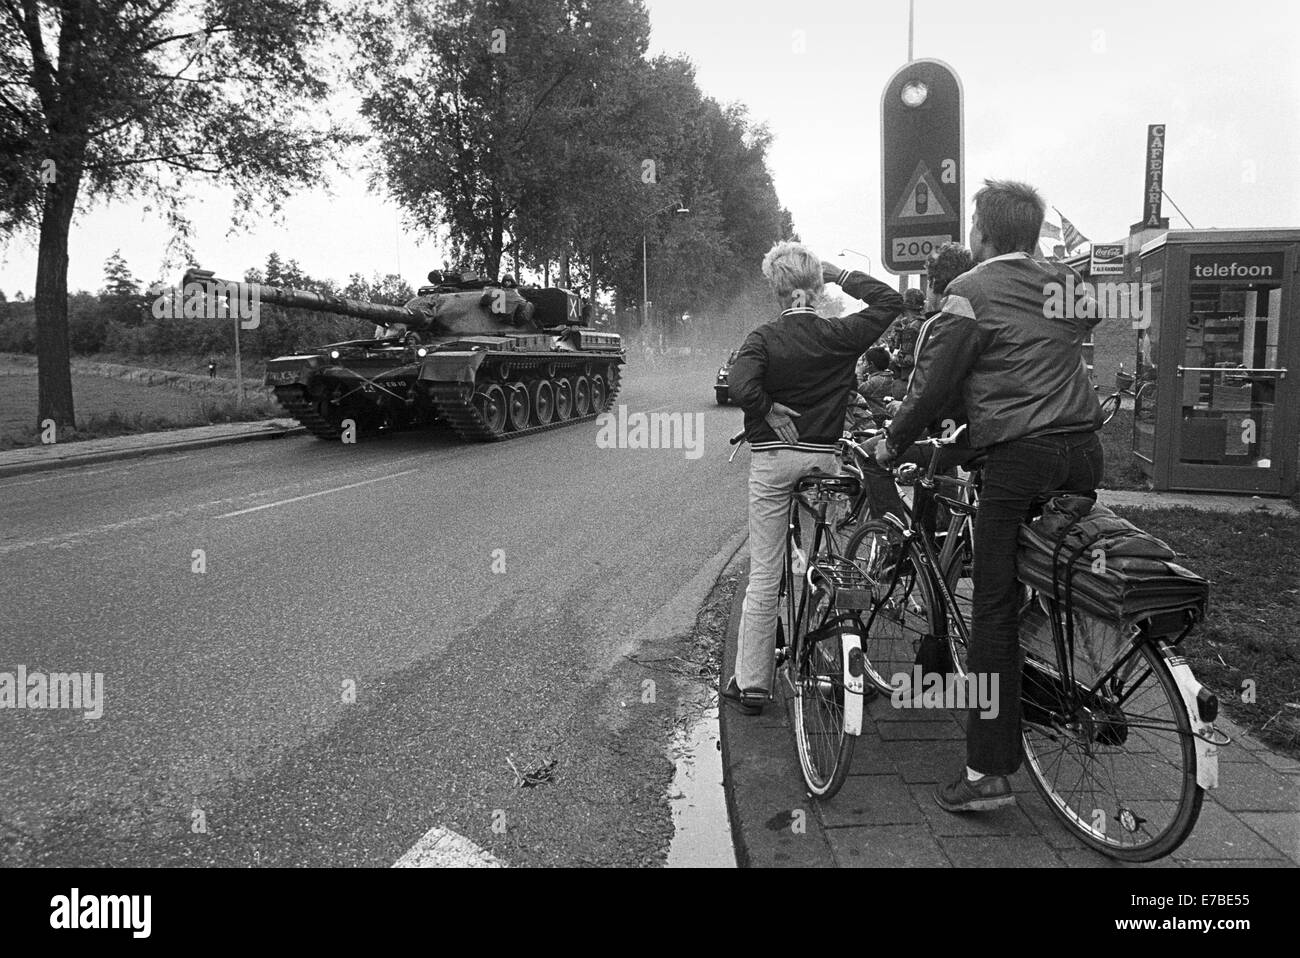 http://c7.alamy.com/comp/E7BE55/nato-exercises-in-the-netherlands-british-tank-chieftain-cross-a-village-E7BE55.jpg